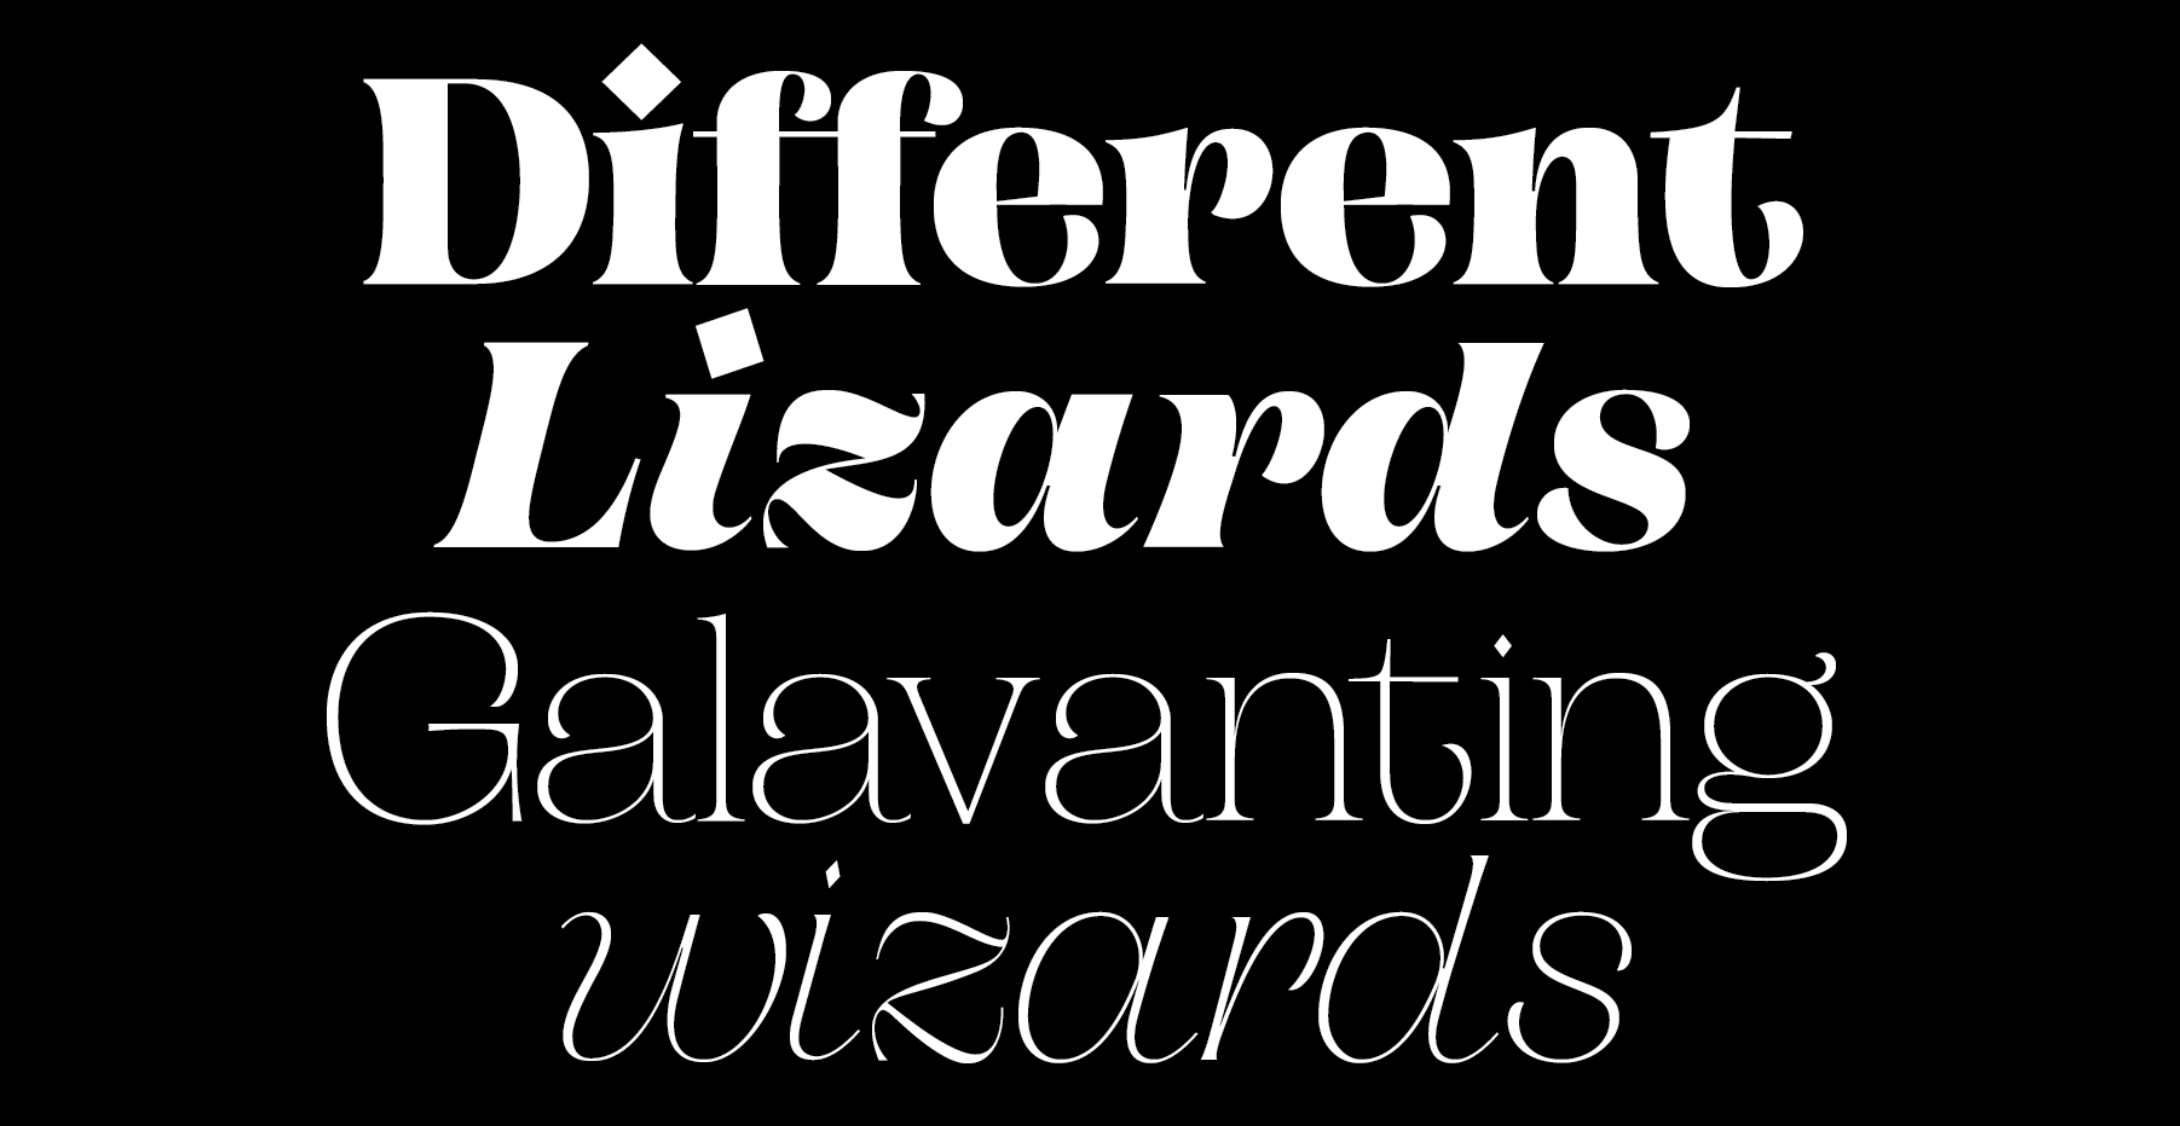 Two new weights (Thin and Black) have been added to Campaign Serif